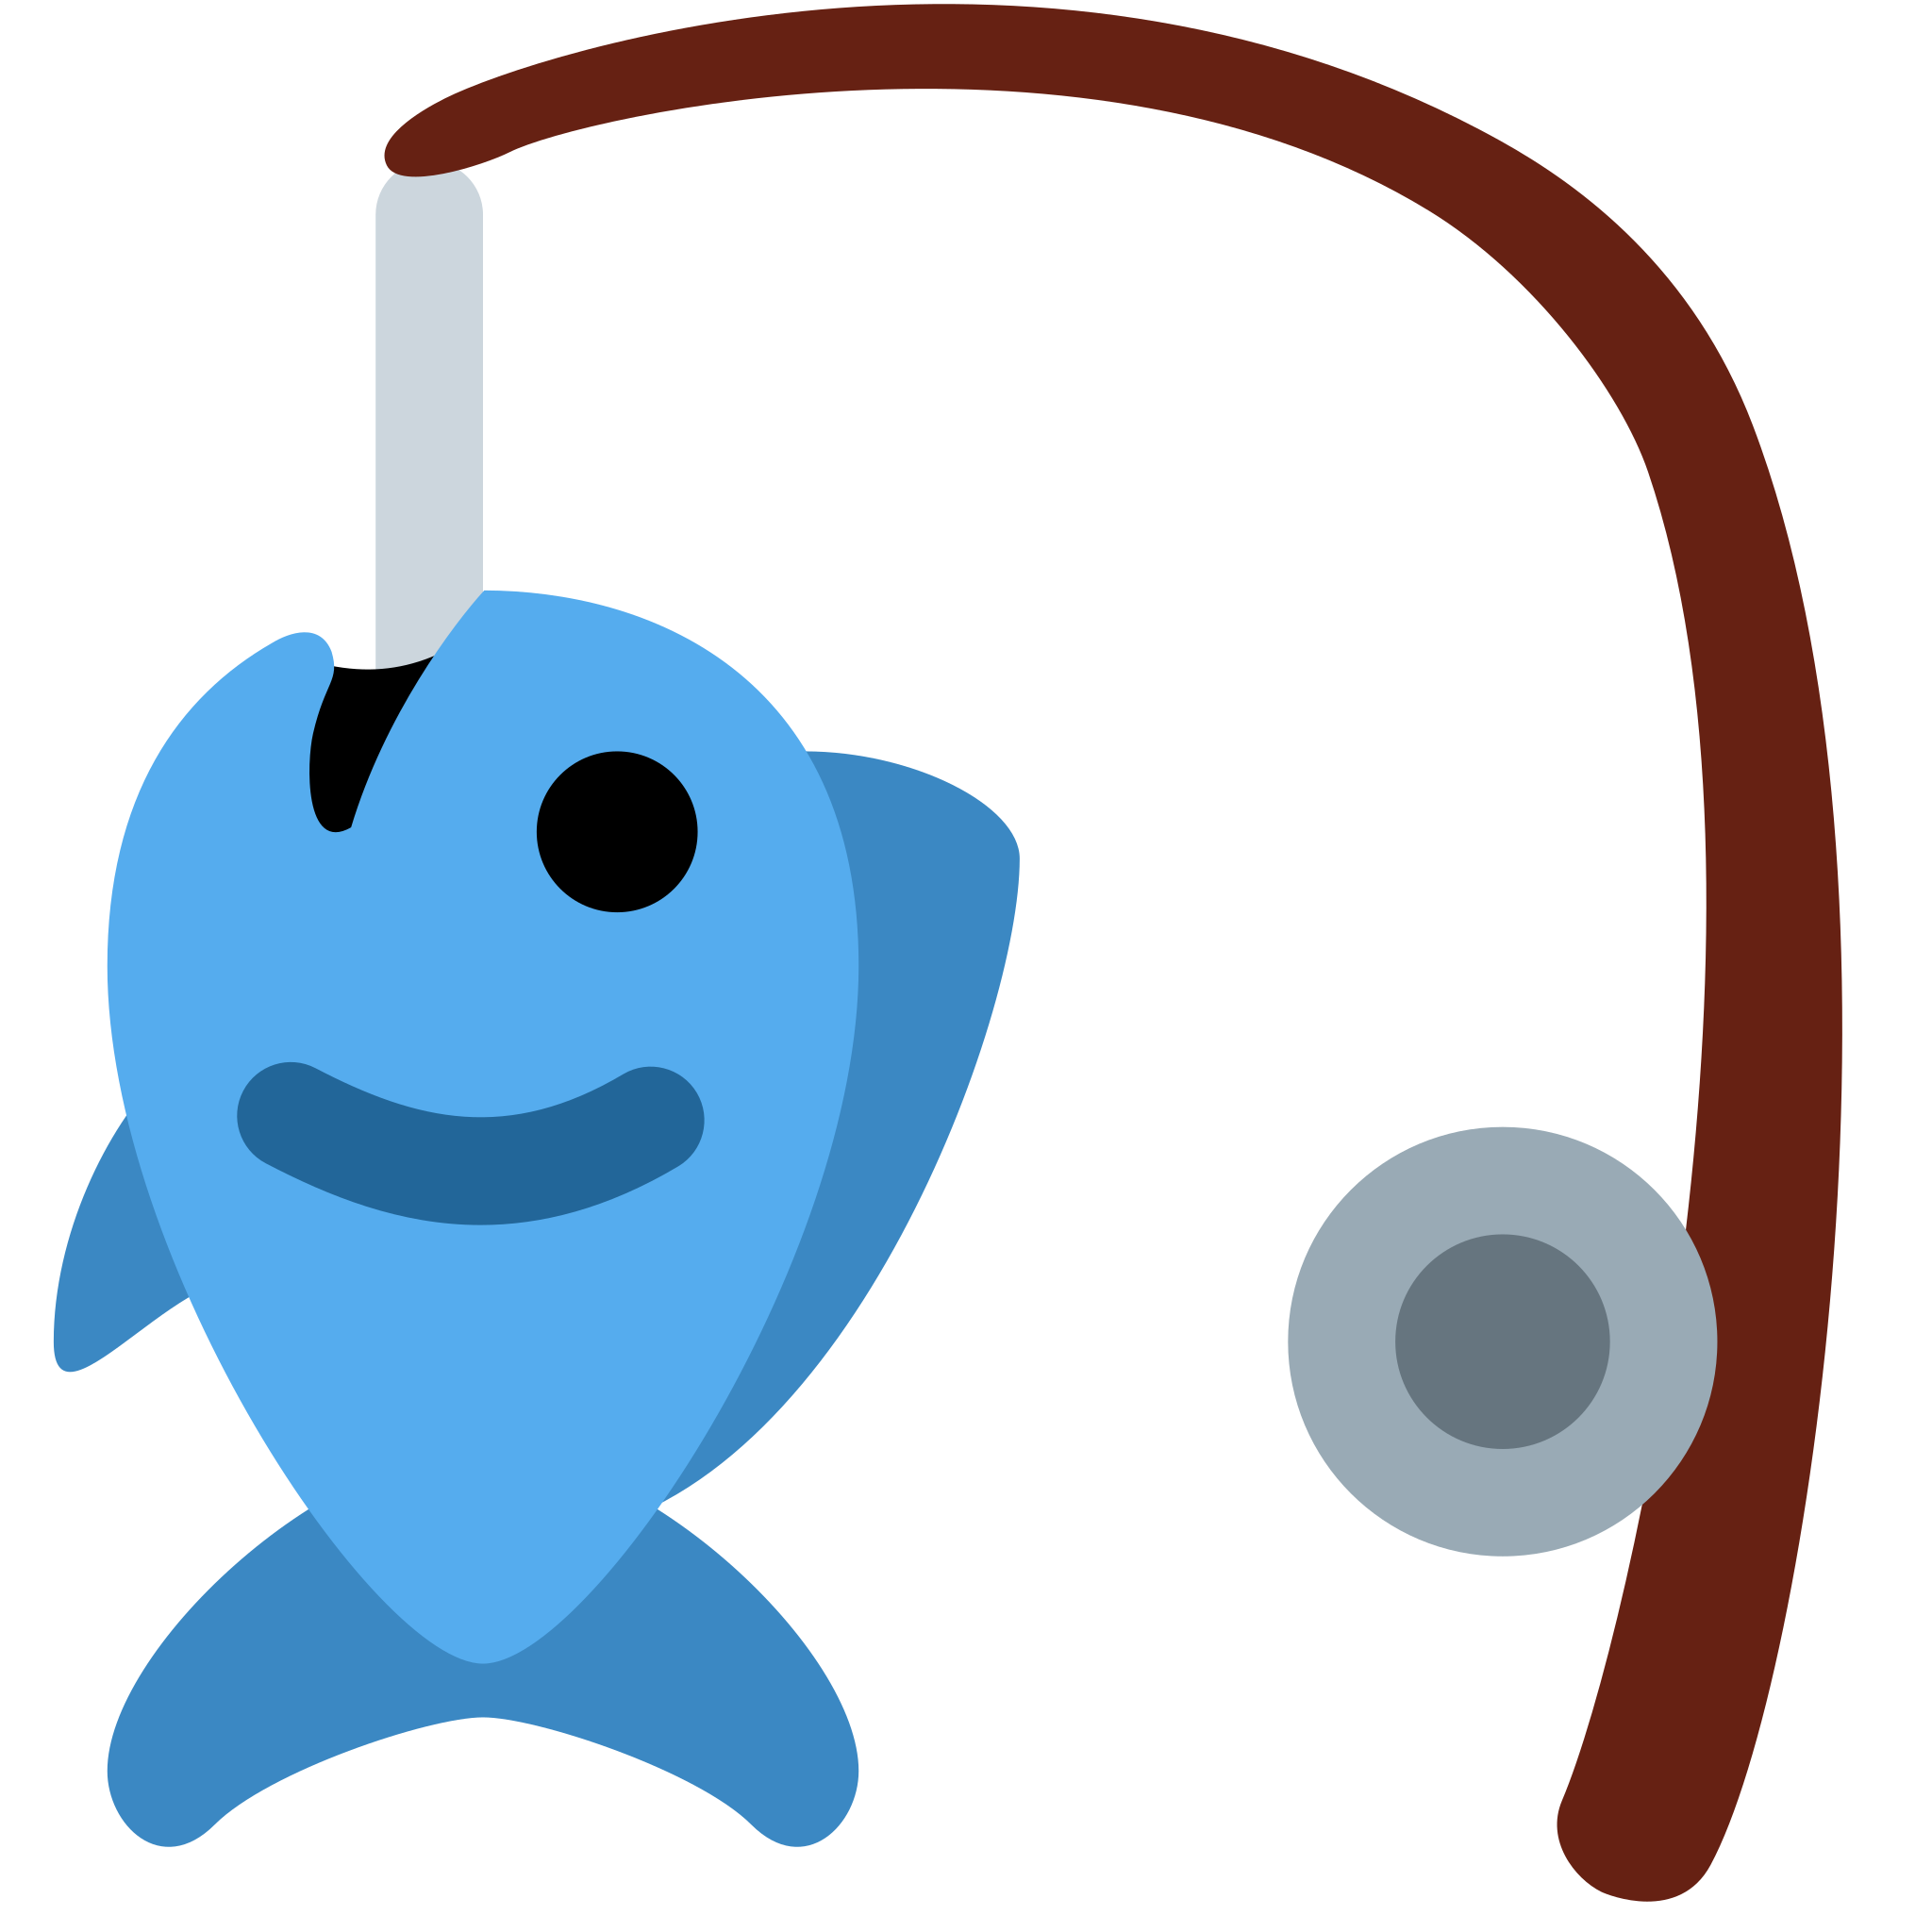 Fishing clipart fishing gear. Pole with fish deanlevin